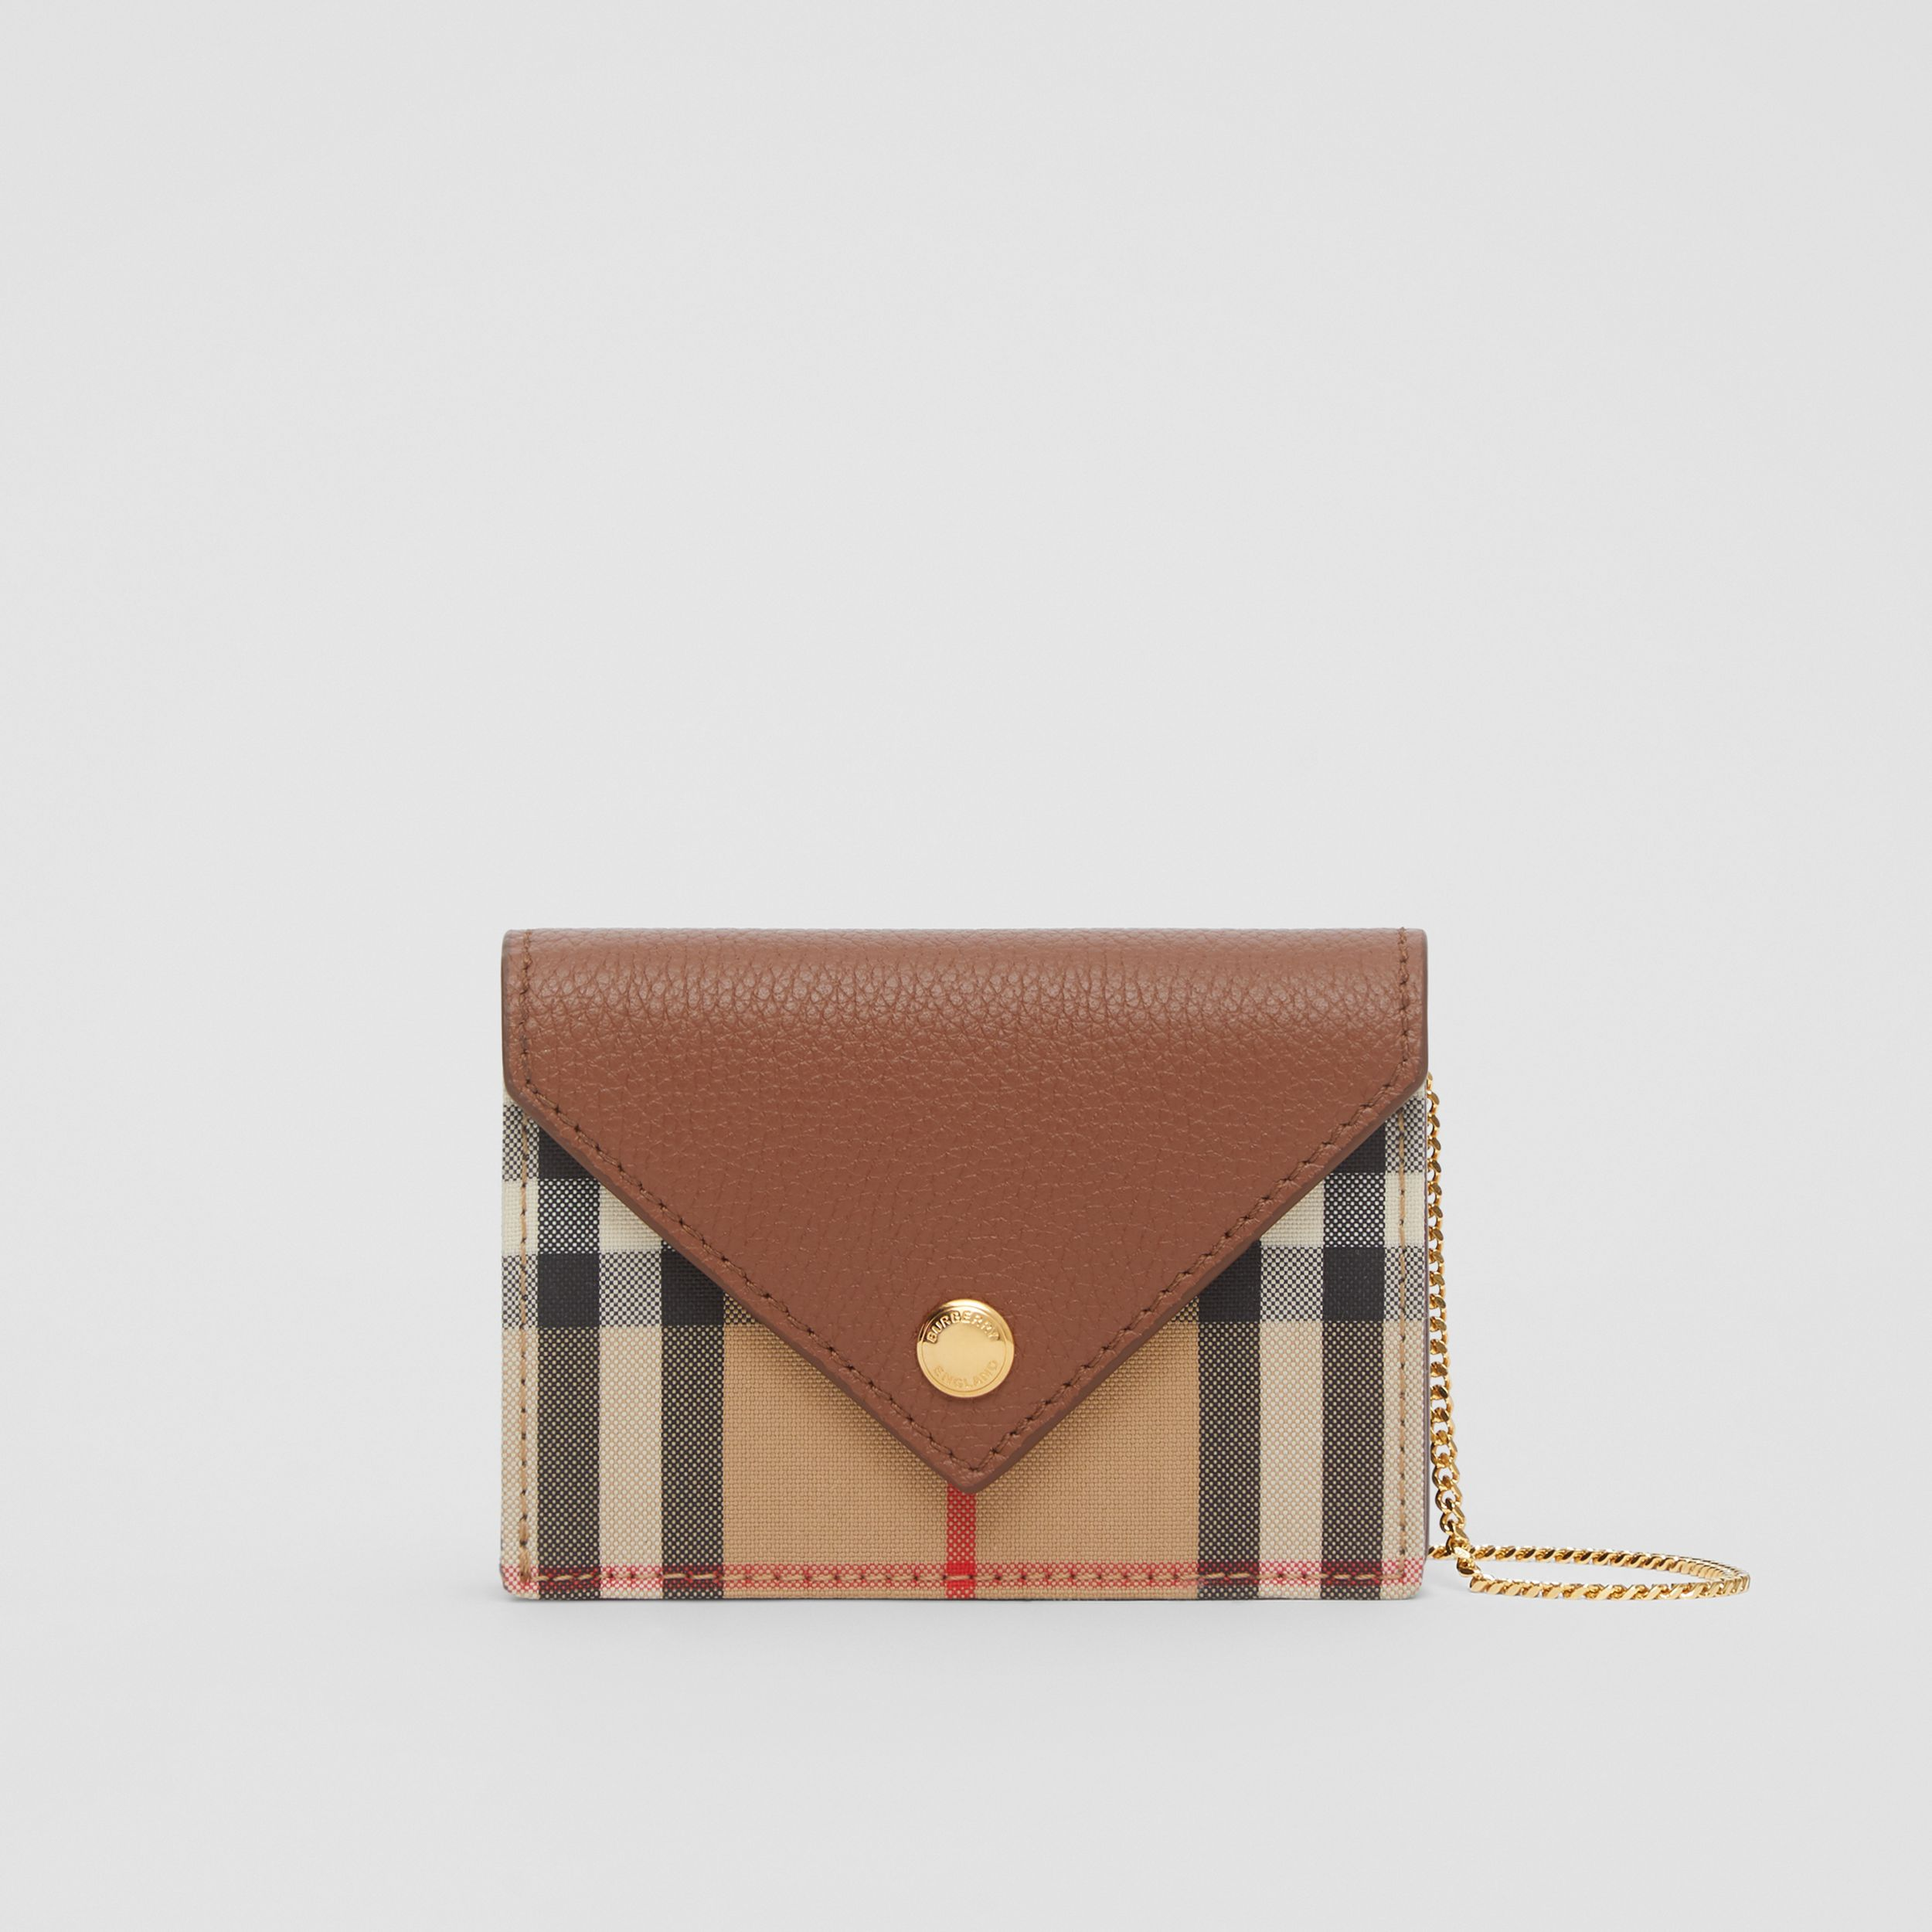 Vintage Check and Leather Card Case with Strap in Tan - Women | Burberry United Kingdom - 1